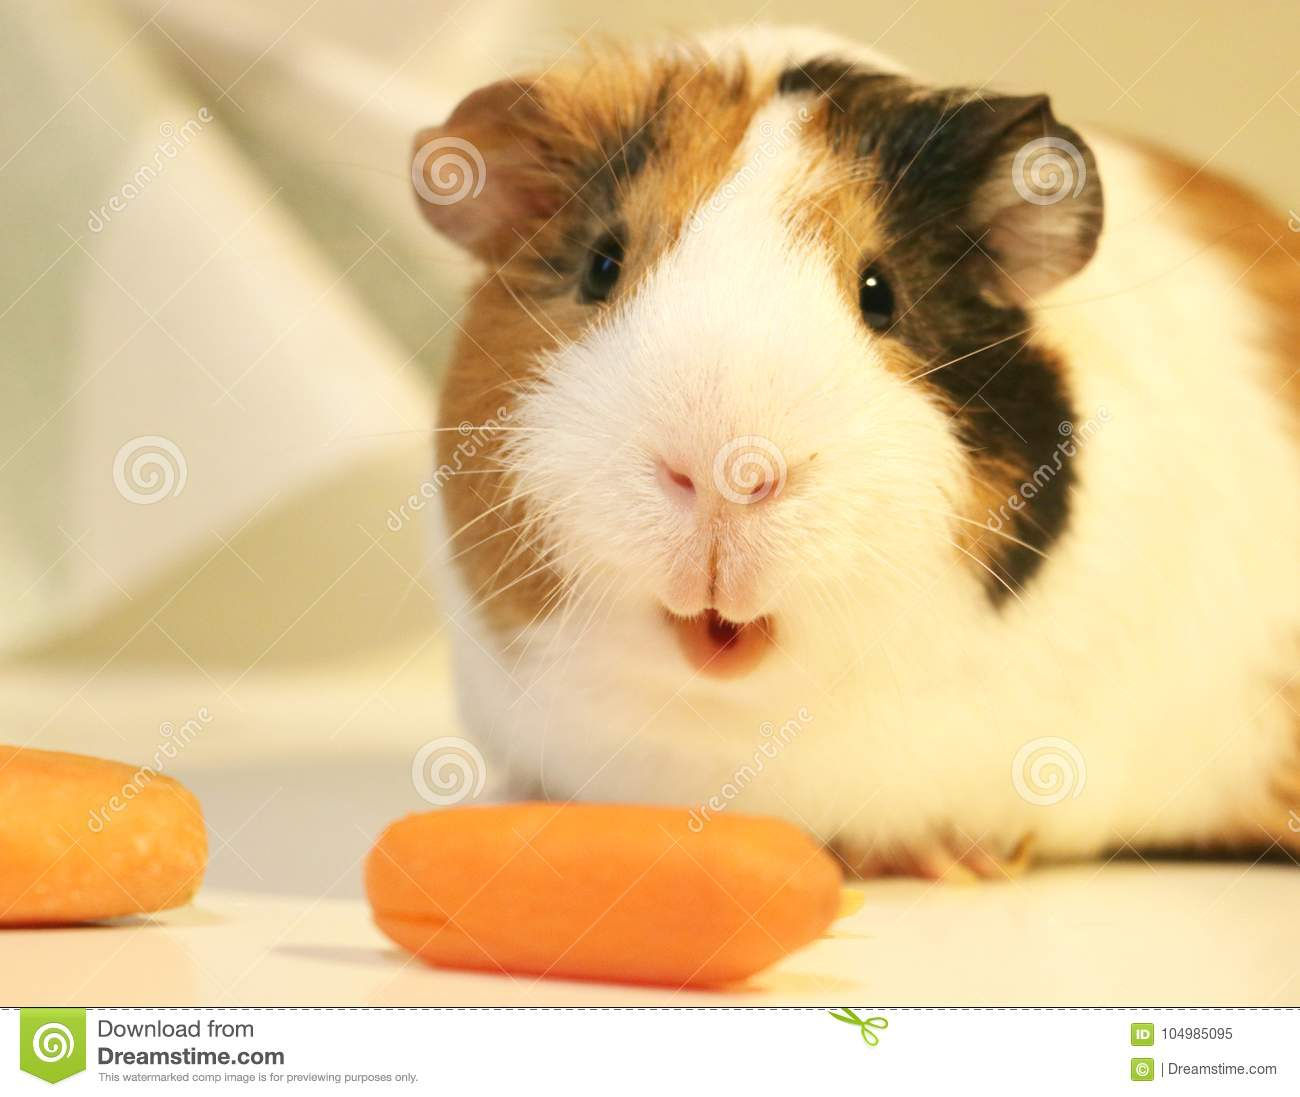 Cute And Funny Guinea Pig Is Eating A Carrot Stock Image